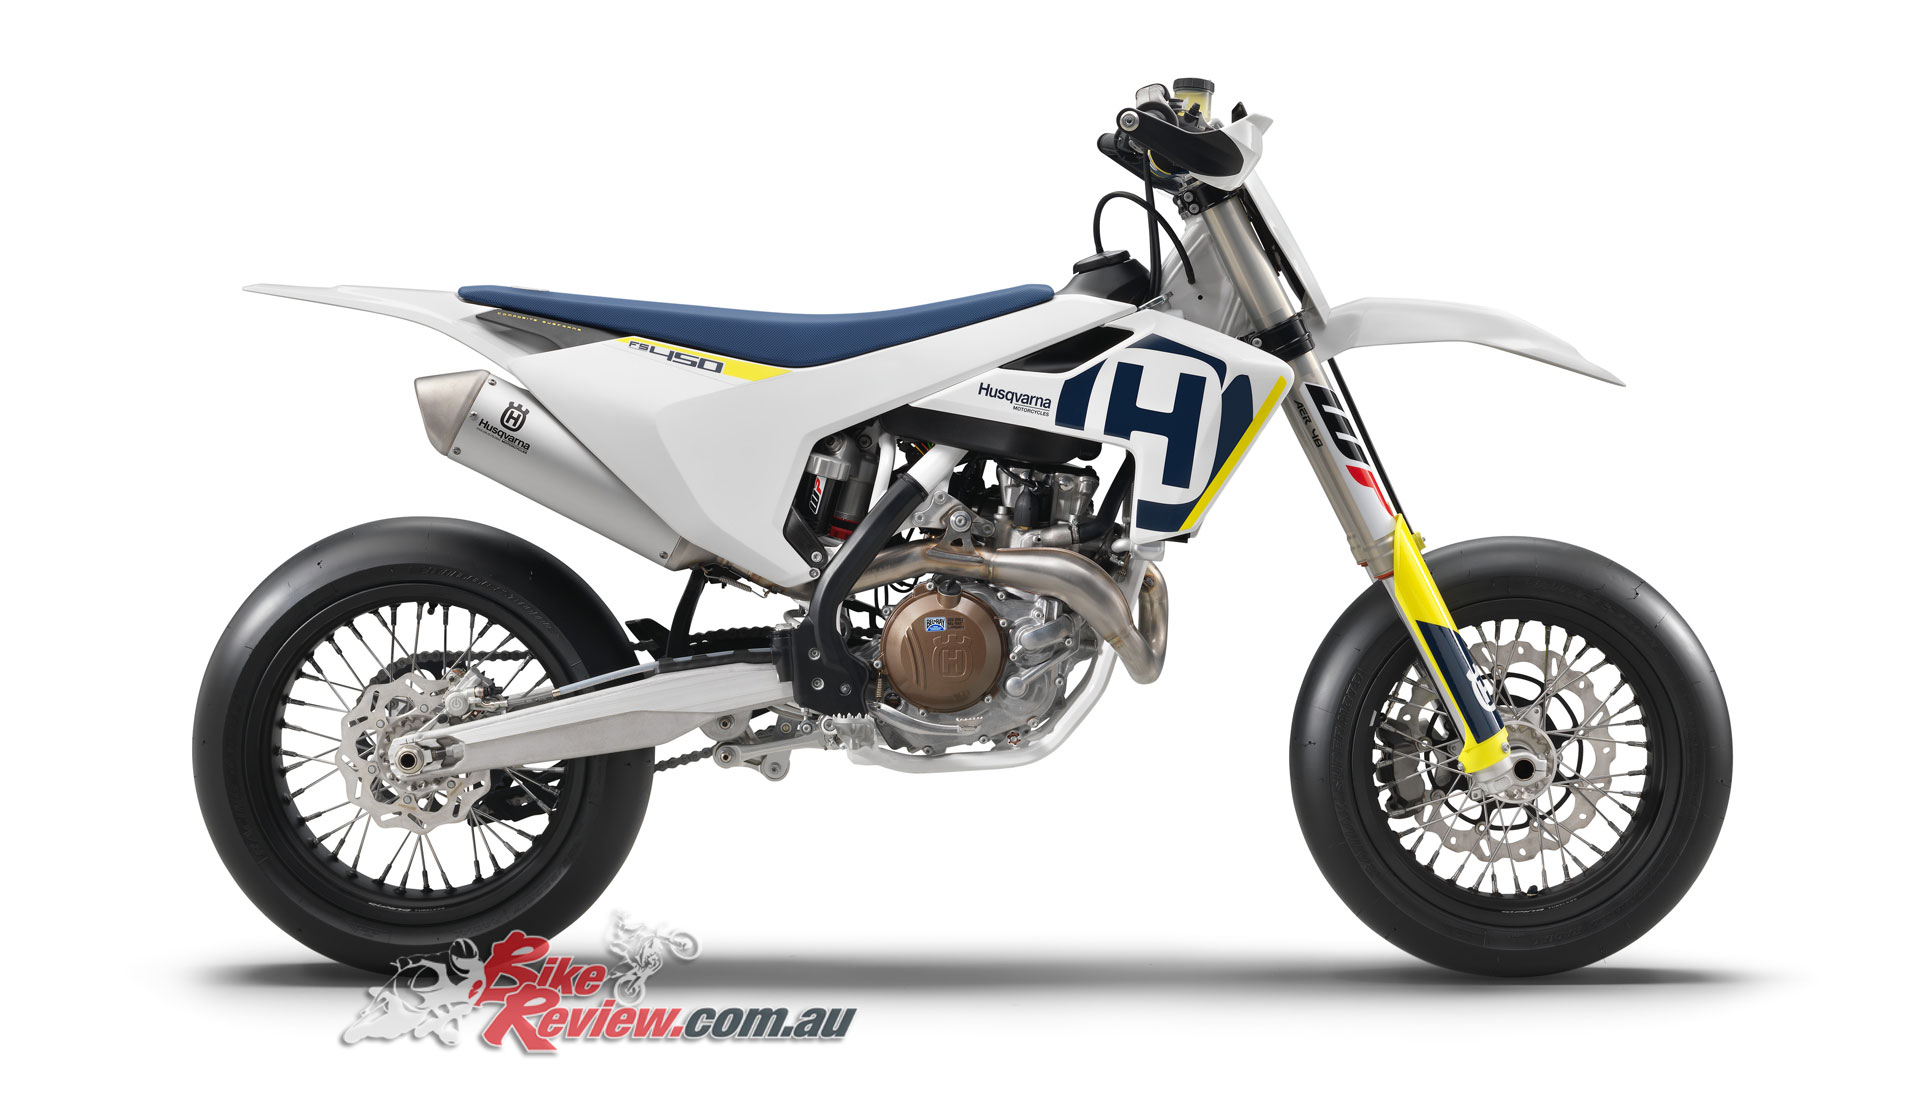 husqvarna introduces new fs 450 supermoto bike review. Black Bedroom Furniture Sets. Home Design Ideas